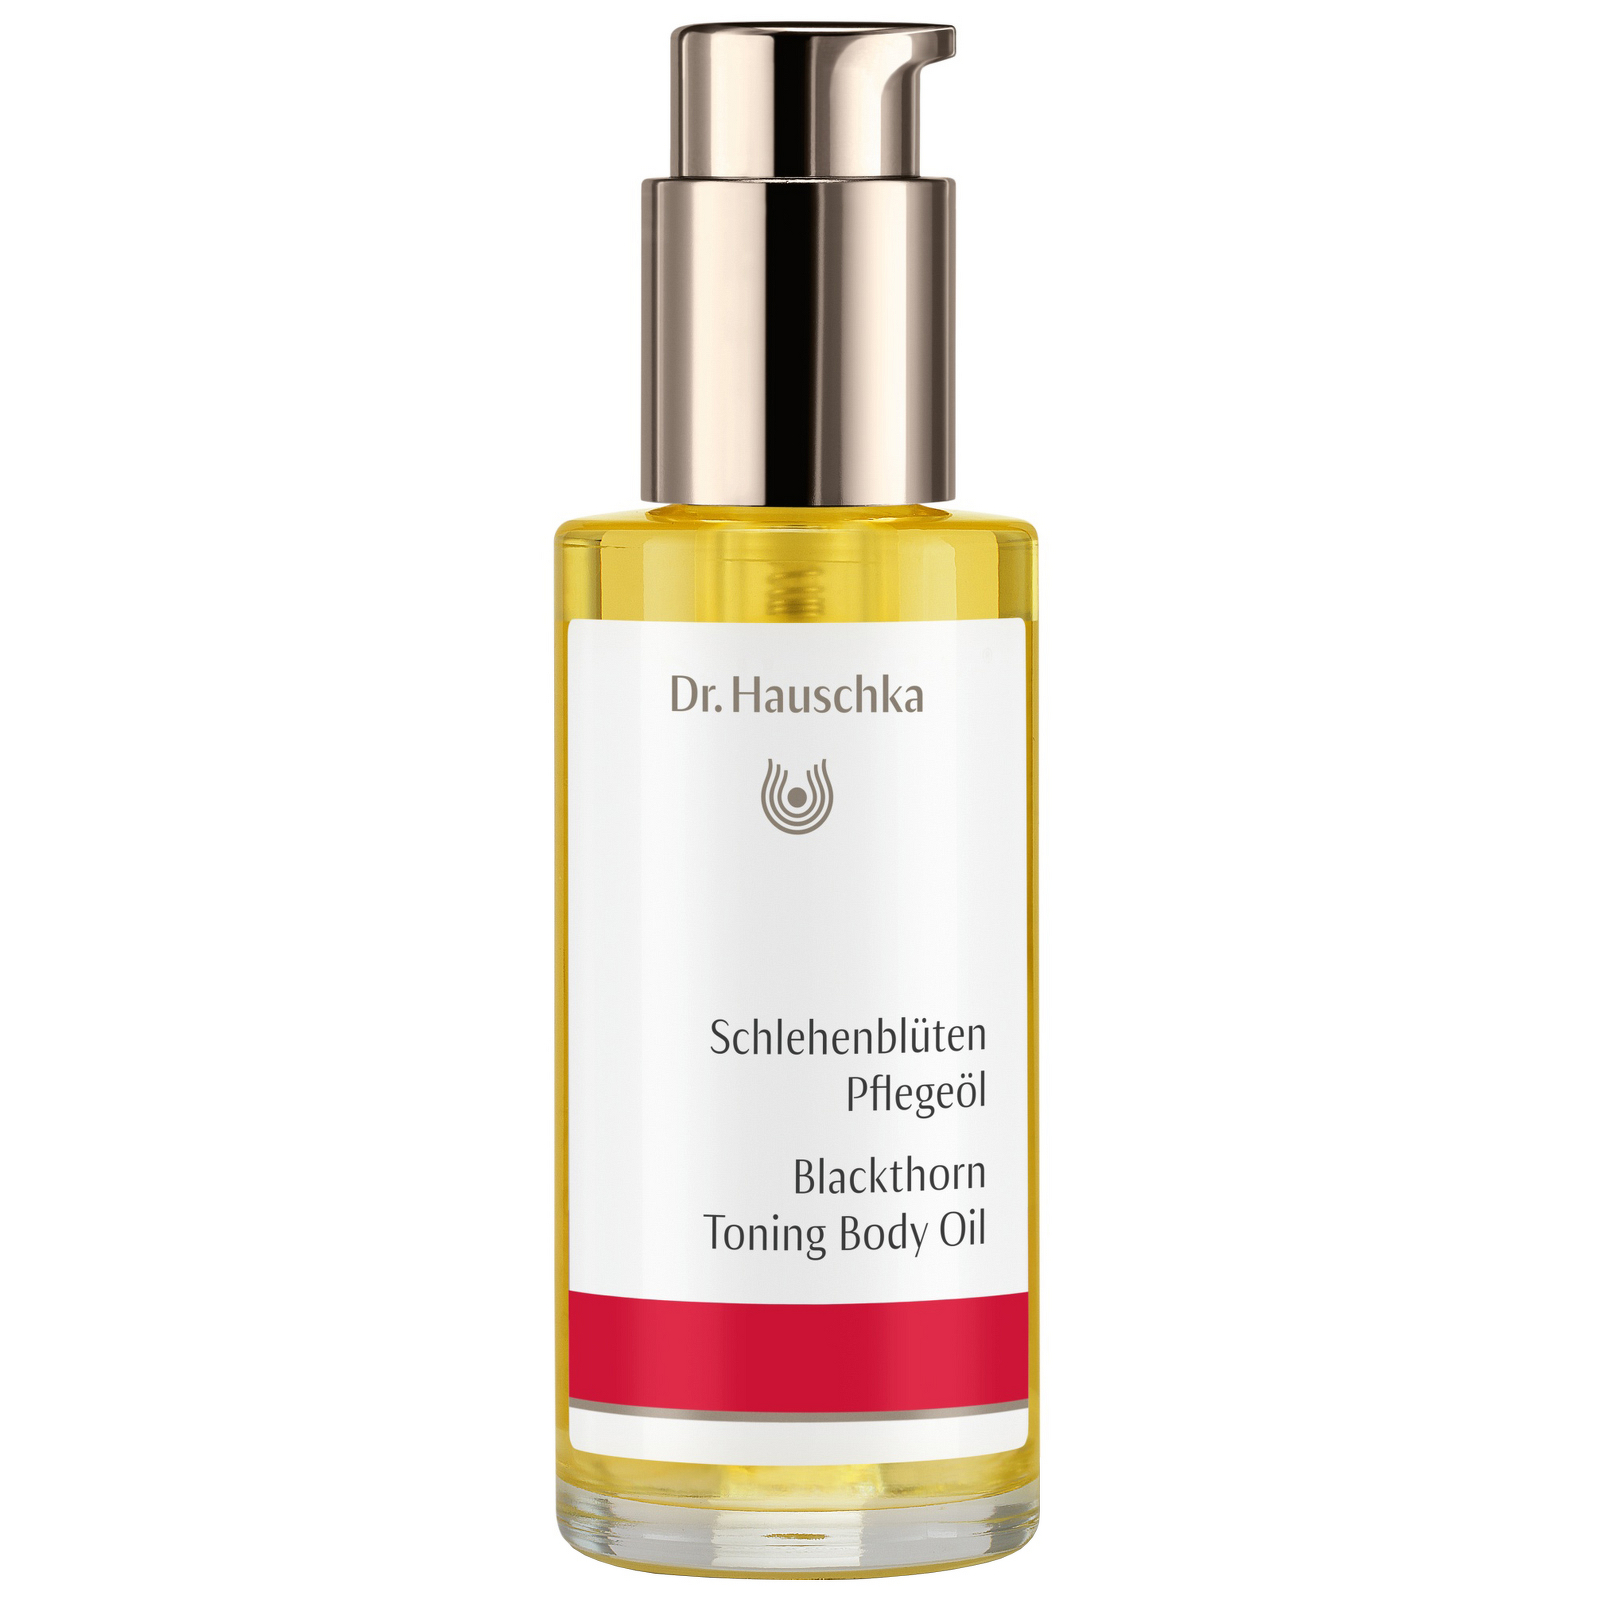 Dr. Hauschka Body Care Blackthorn Toning Body Oil 75ml